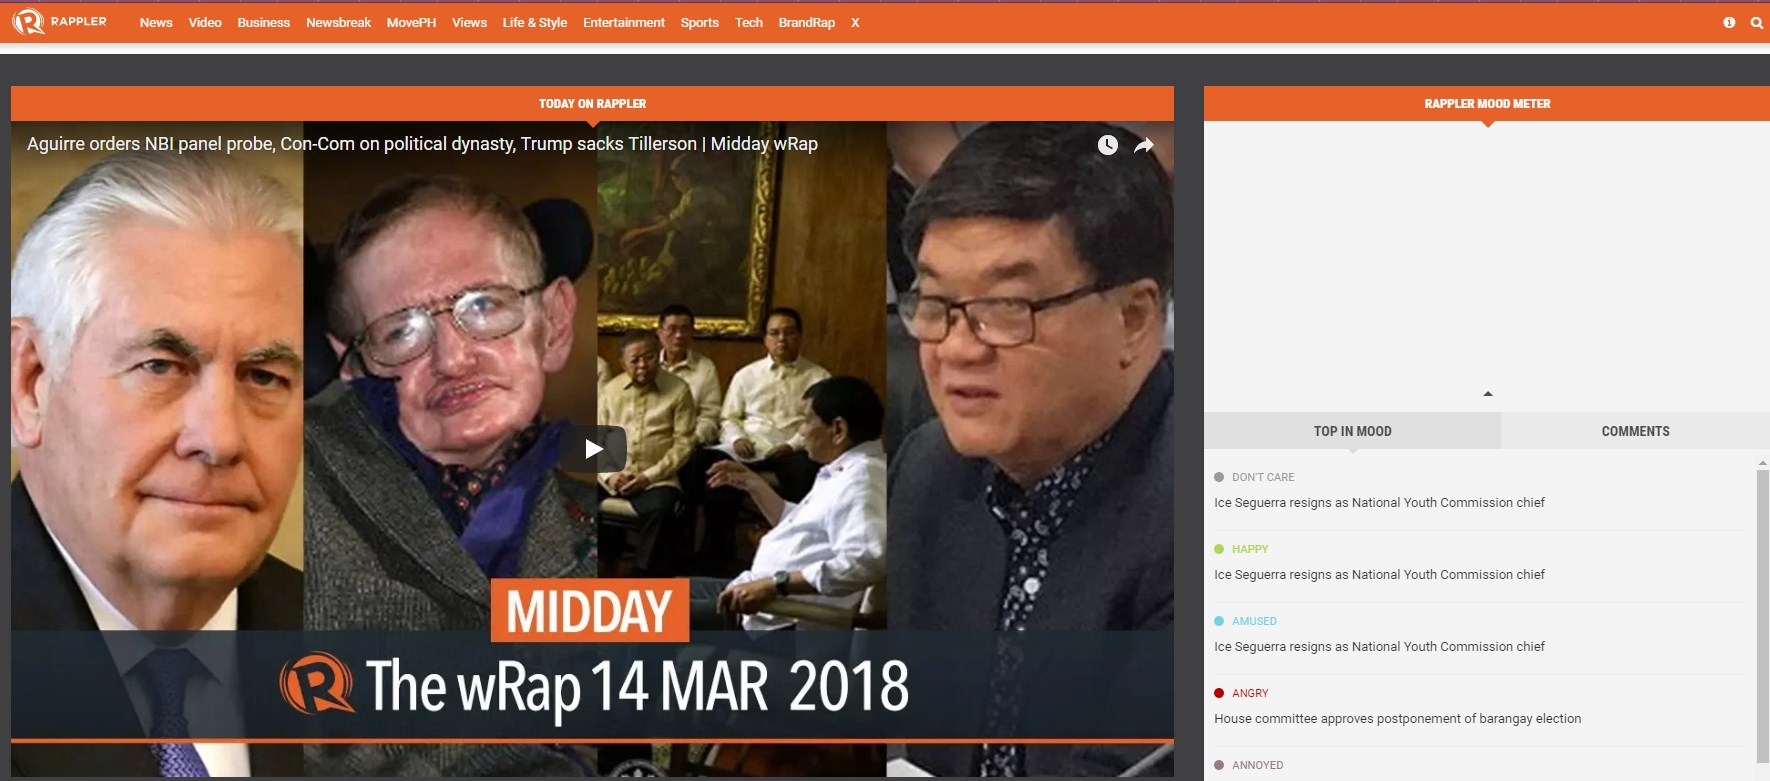 Rappler News Multimedia Citizen Journalism Social Media